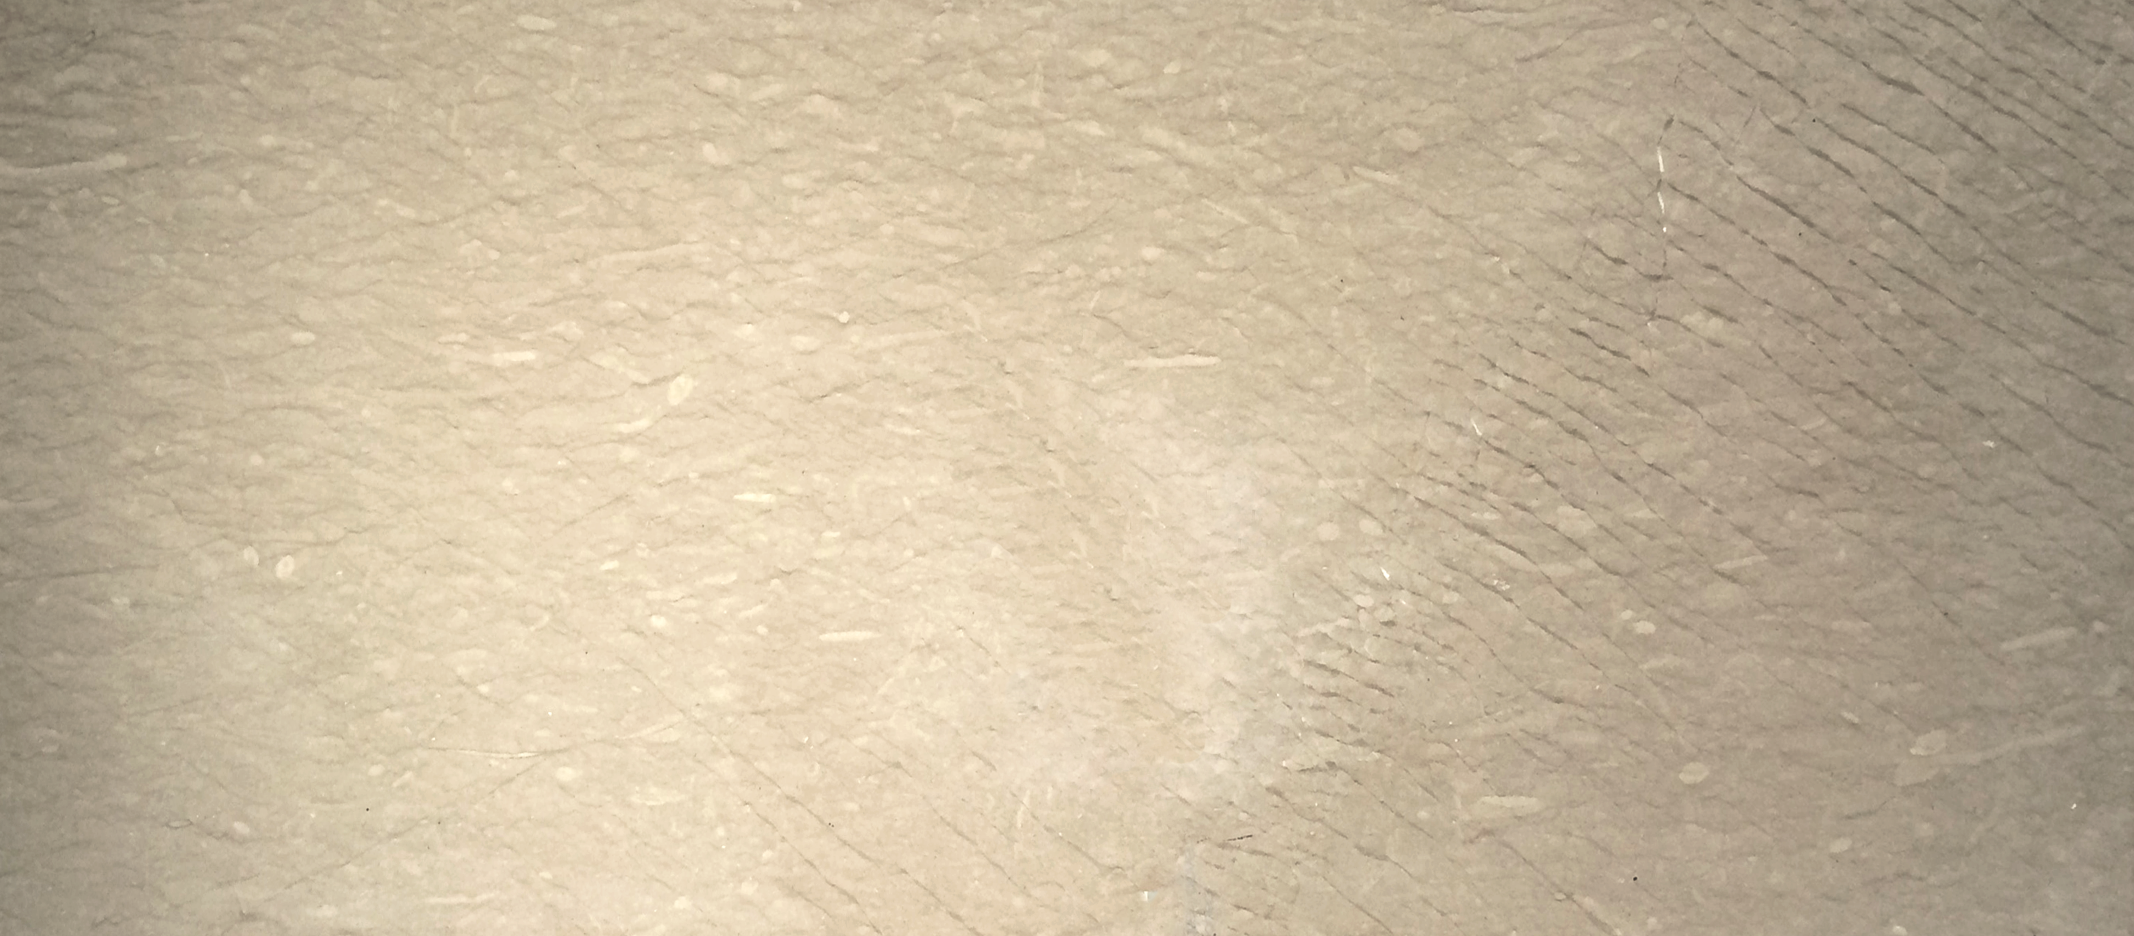 Dove Grey Stone : Natural stone product tile